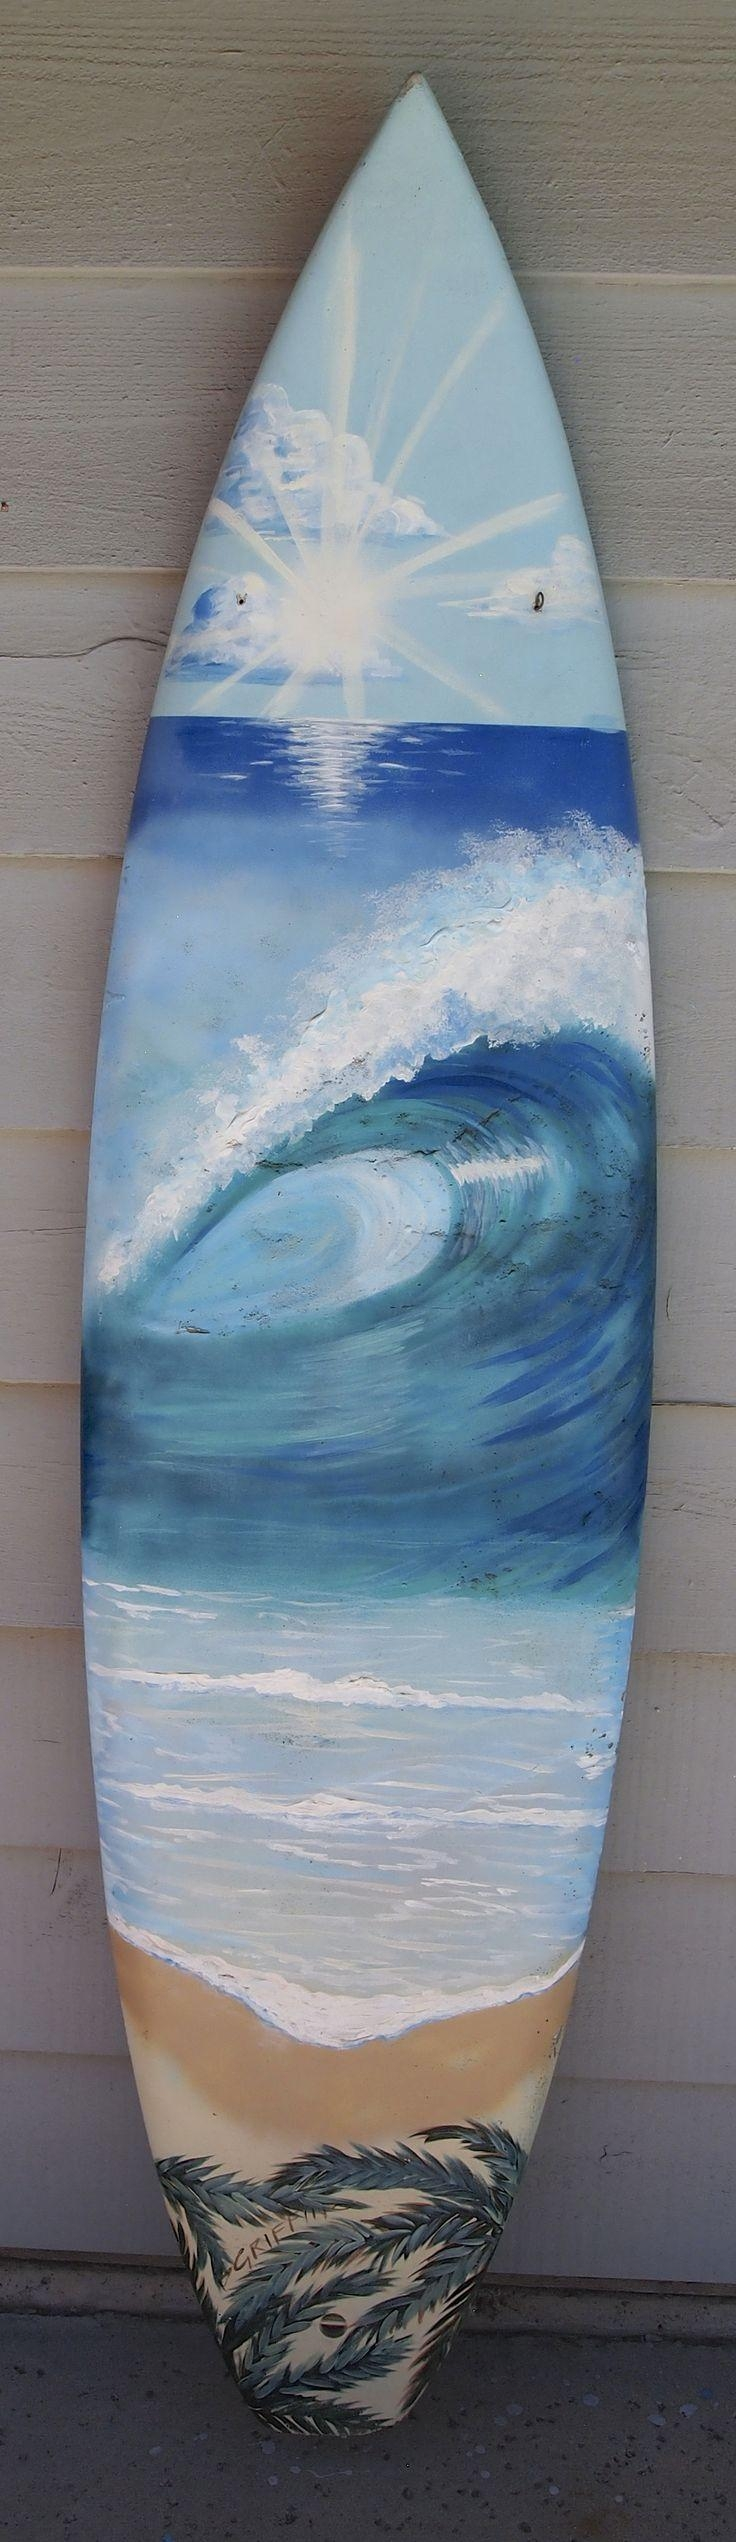 12 Best Surfboard Wall Art Murals Images On Pinterest | Griffins With Regard To Surf Board Wall Art (Image 2 of 20)